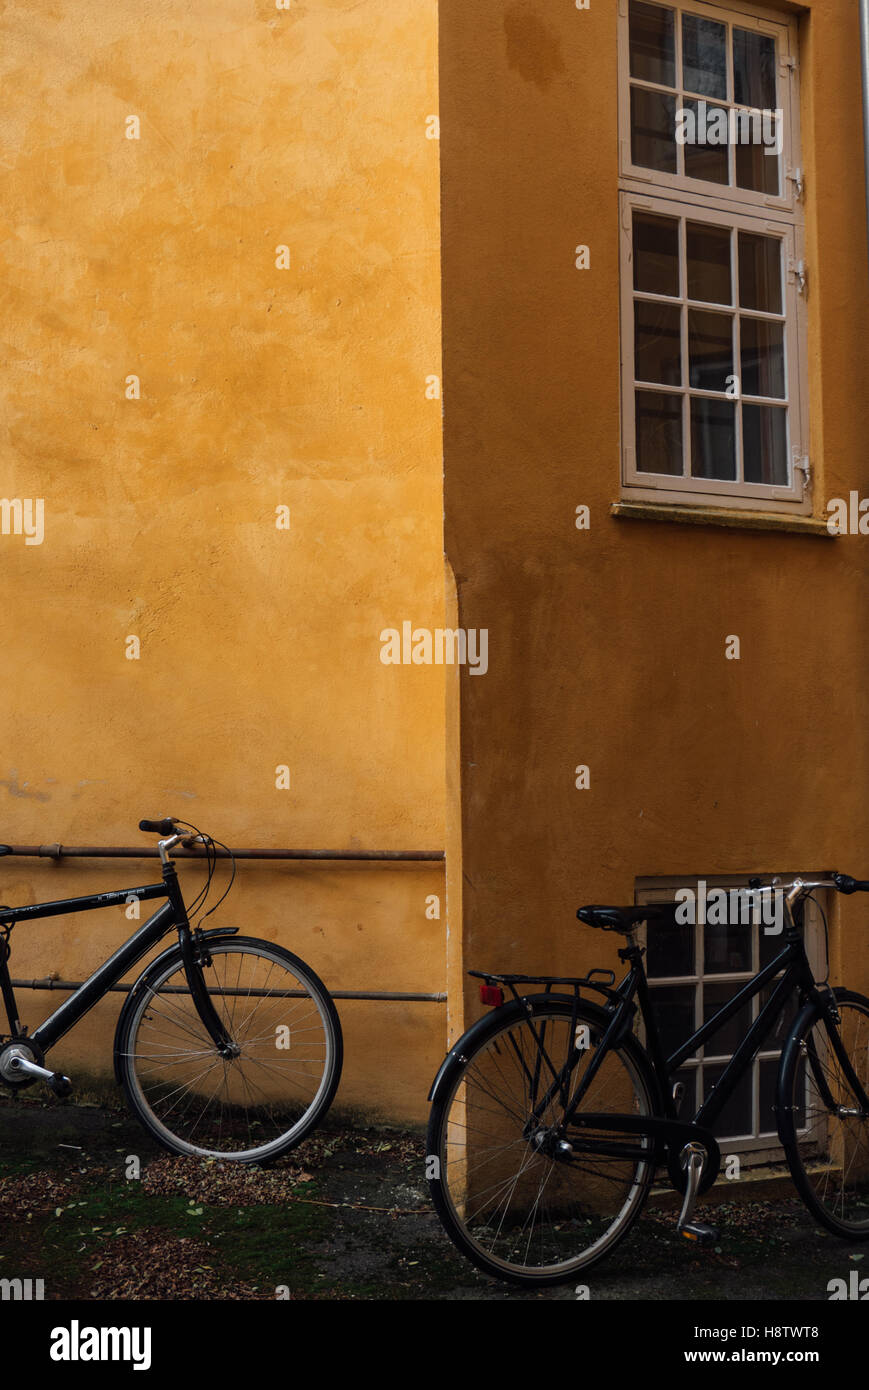 Bikes parked by a yellow building in Copenhagen - Stock Image